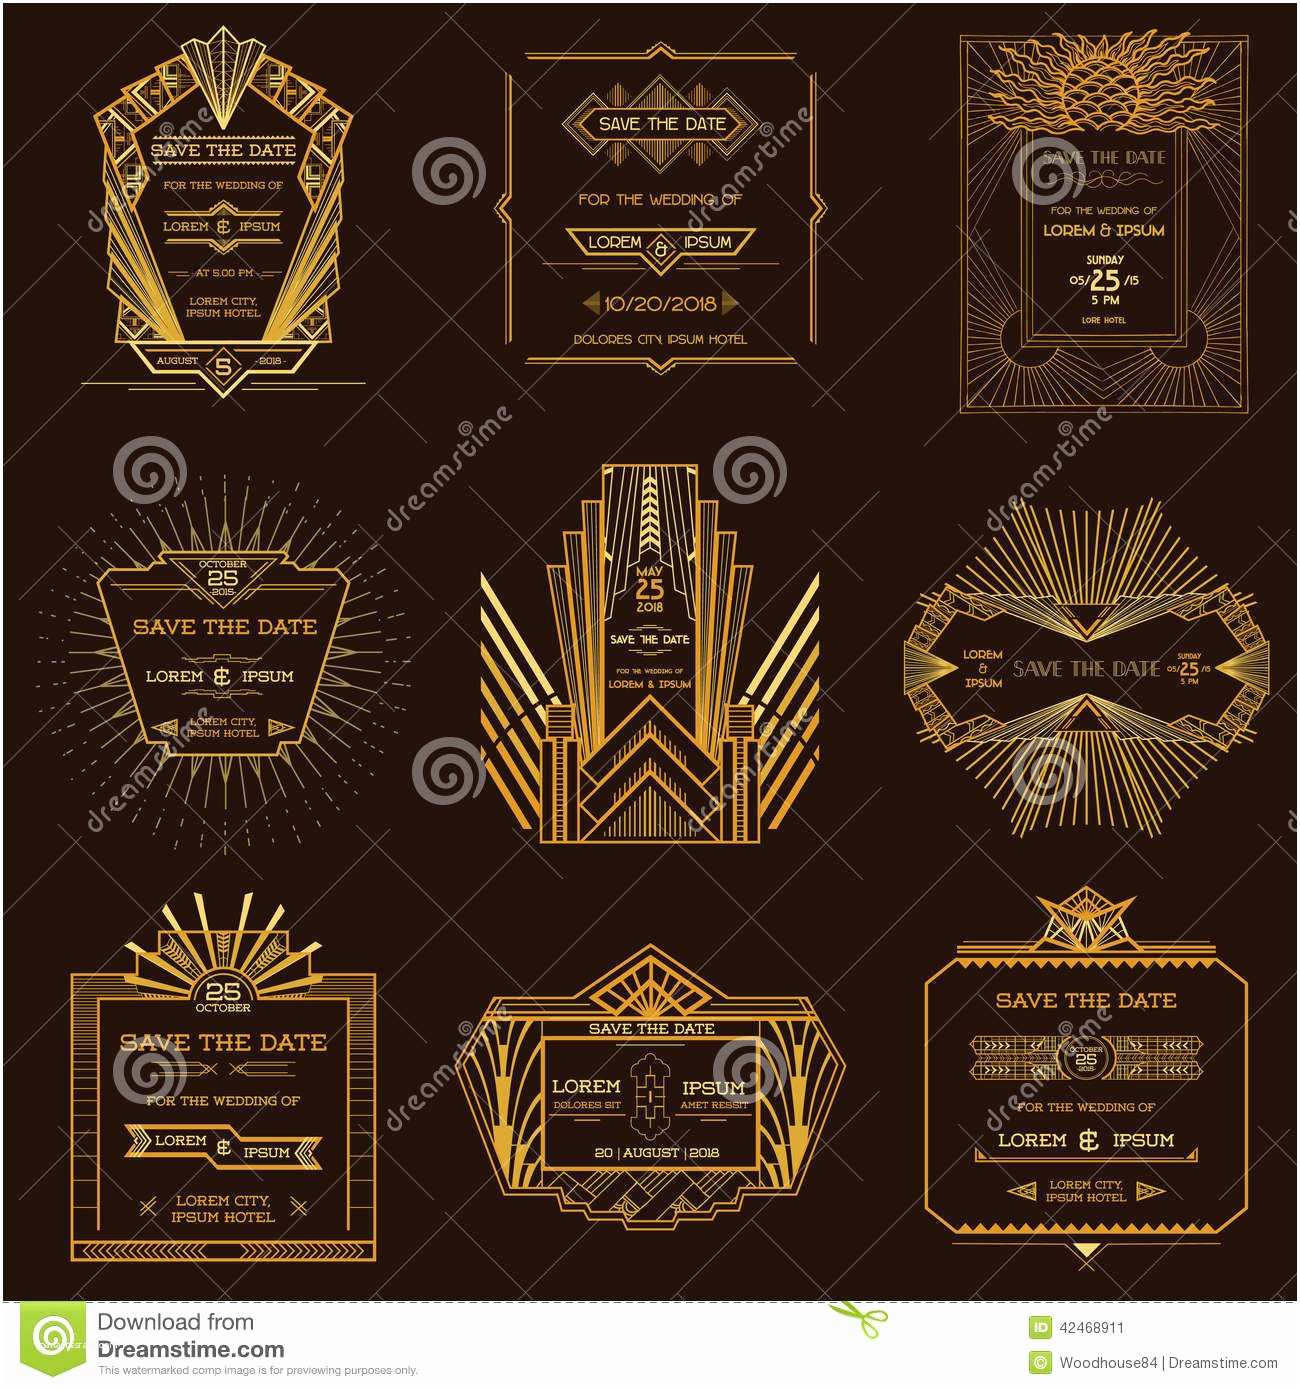 Art Deco Wedding Invitations Free Download Set Wedding Invitation Cards Art Deco Stock Vector